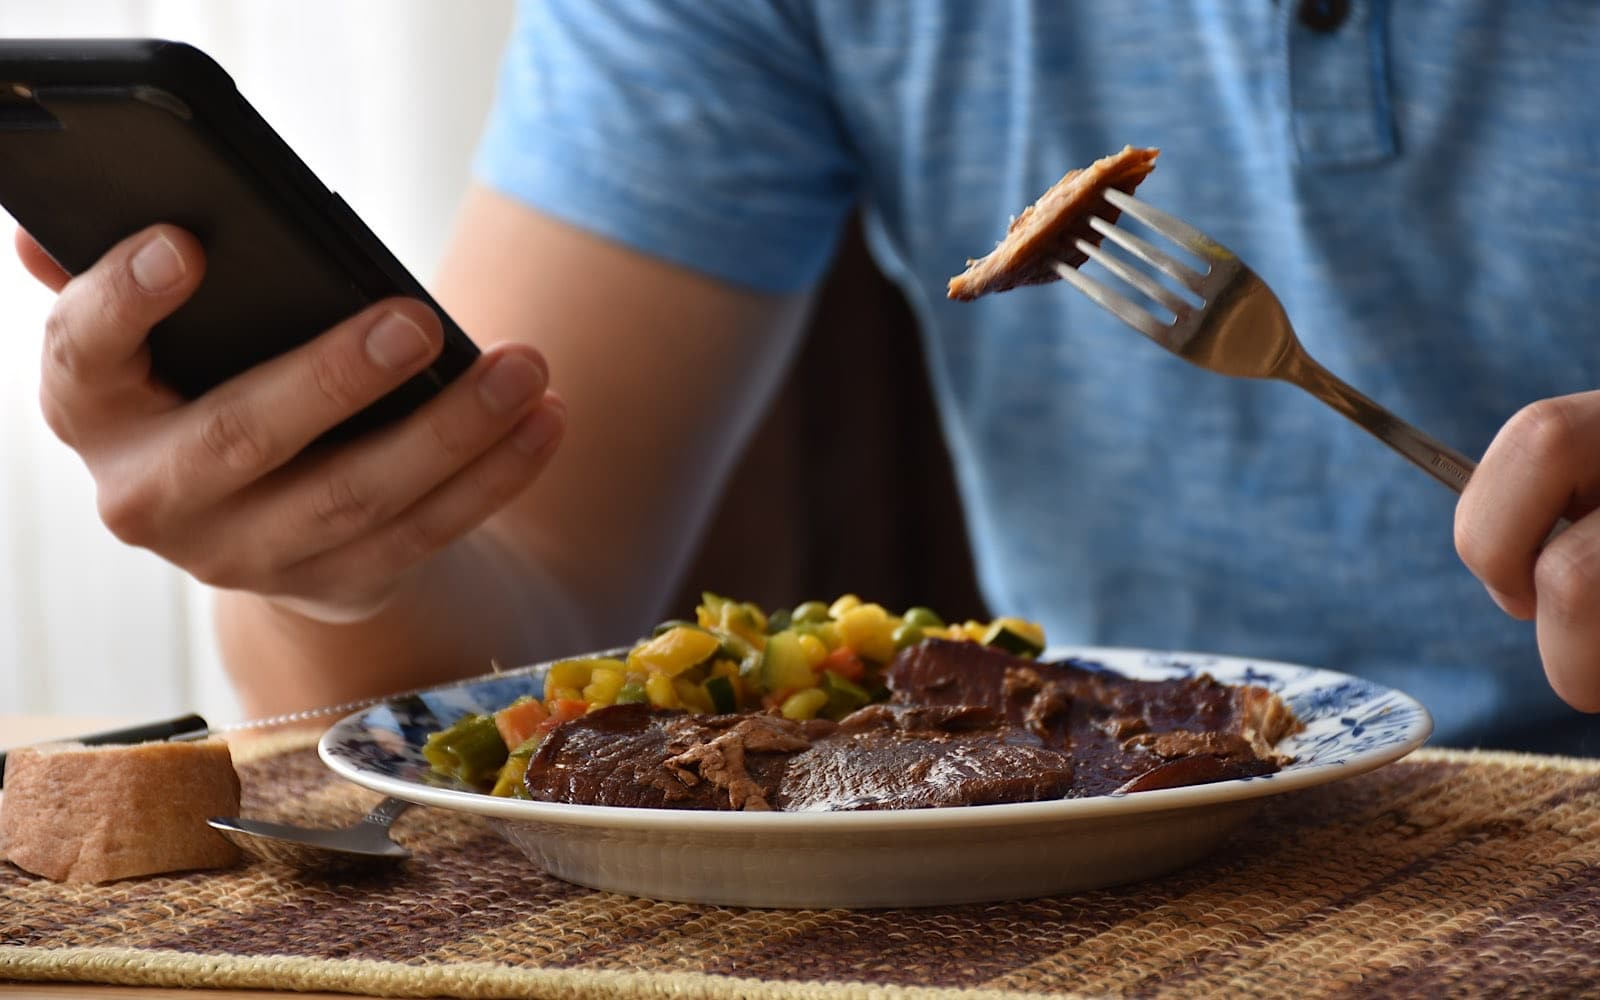 Someone eating a meal while checking their phone